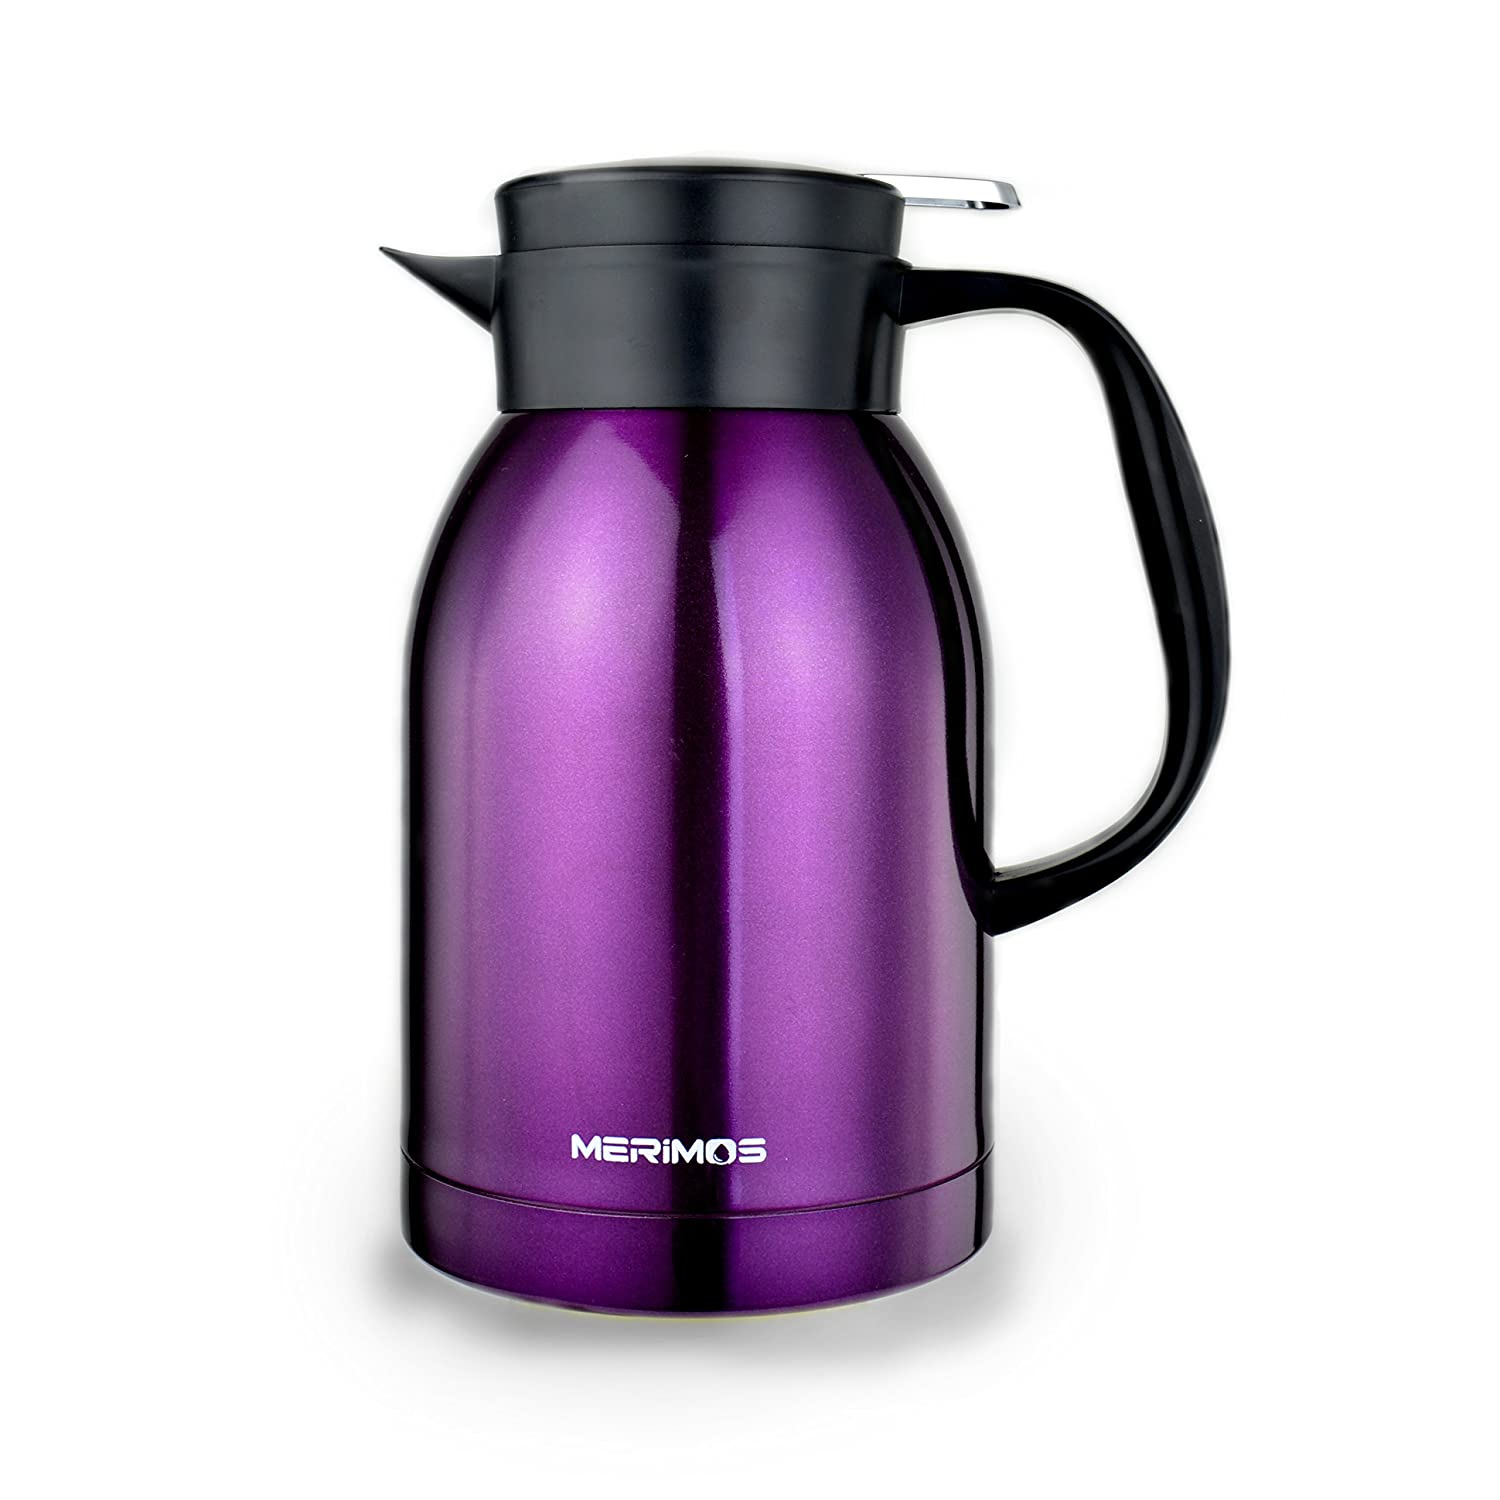 Merimos Coffee Carafe,68 Oz Double Wall Vacuum Insulated Stainless Steel Thermal Carafe for Tea Coffee Fruit Juice 2 Liter Water Pitcher with Lid Silver